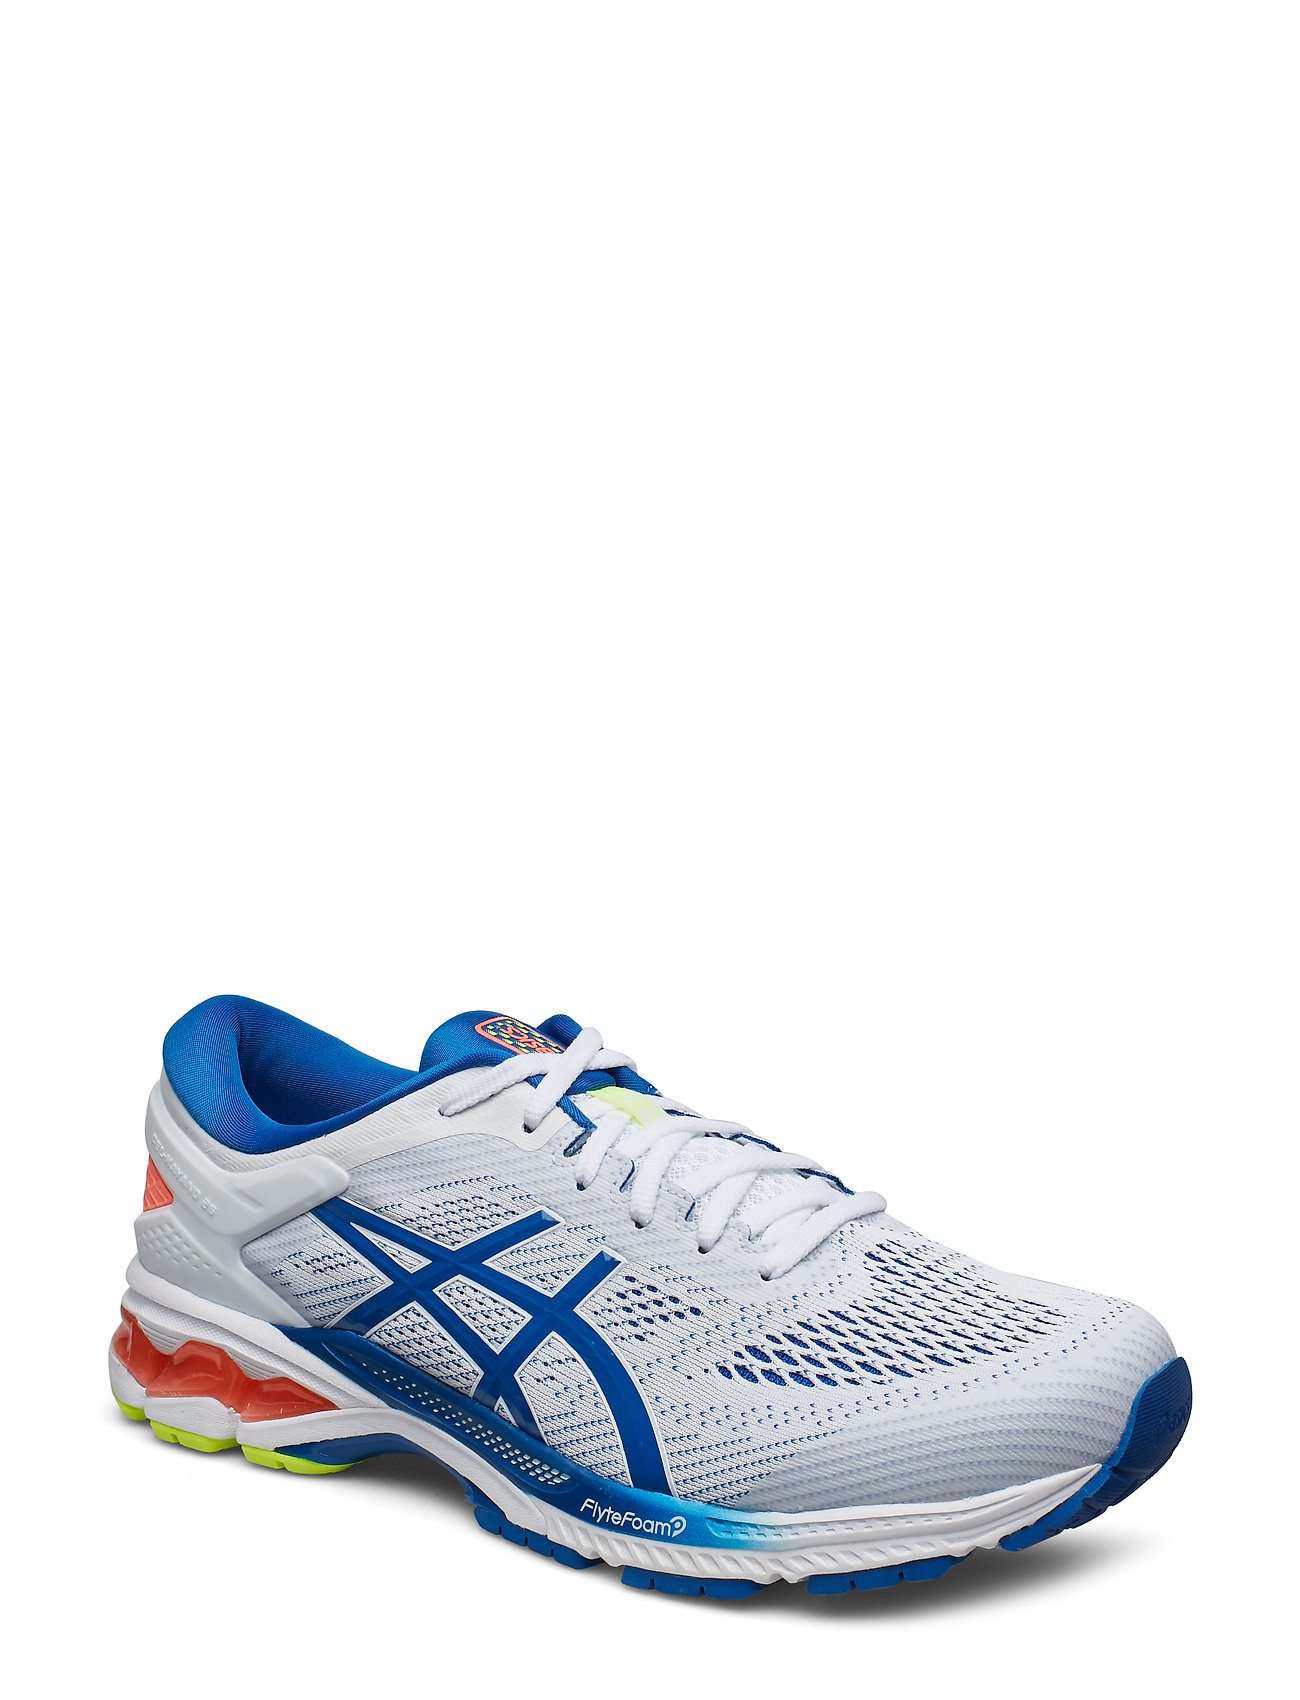 ASICS Gel-Kayano 26 Shoes Sport Shoes Running Shoes Bunt/gemustert ASICS